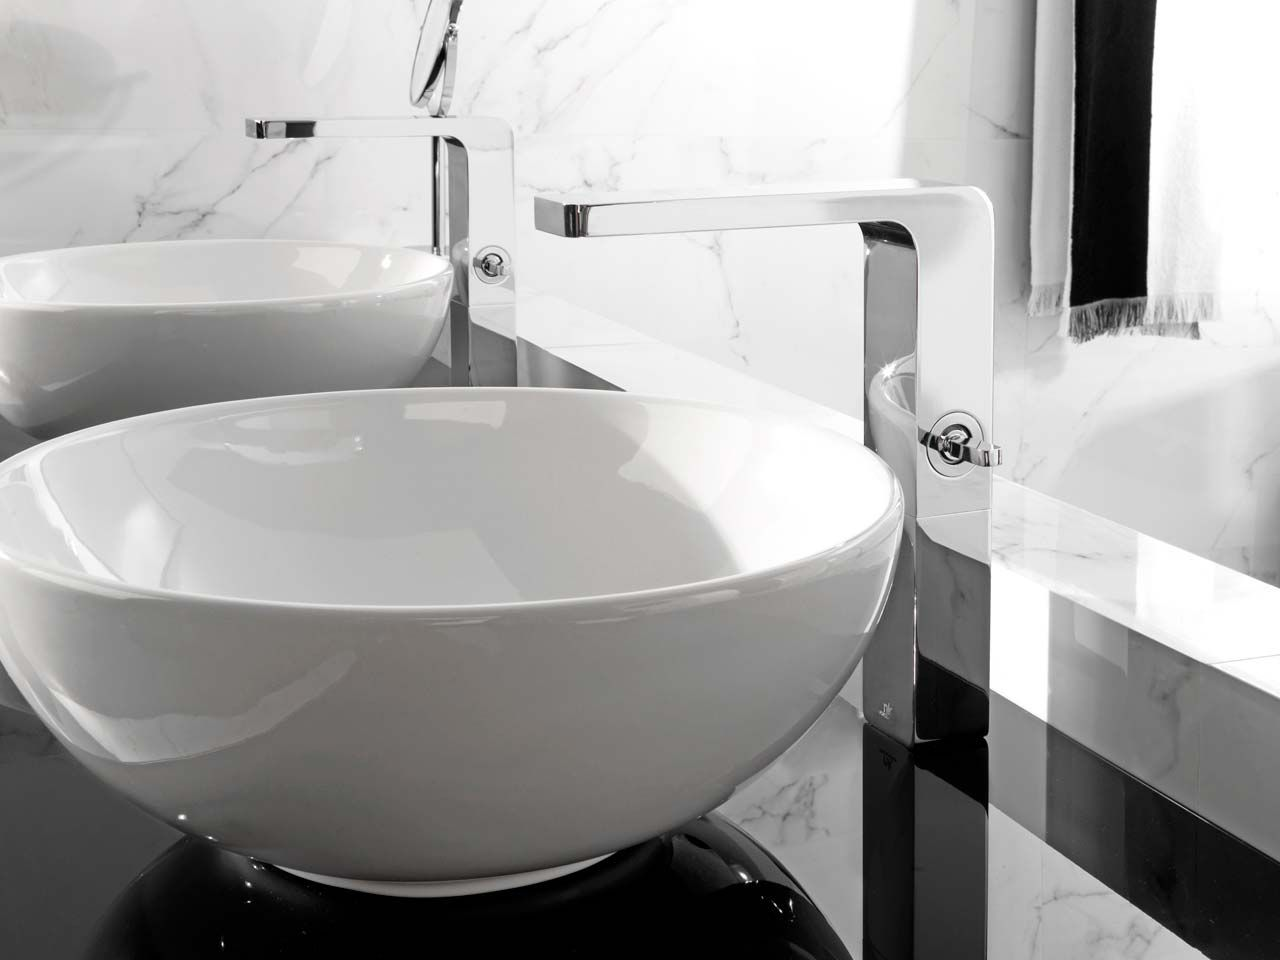 Lavabo porcelanosa monomando home bathroom pinterest for Baldosas bano porcelanosa